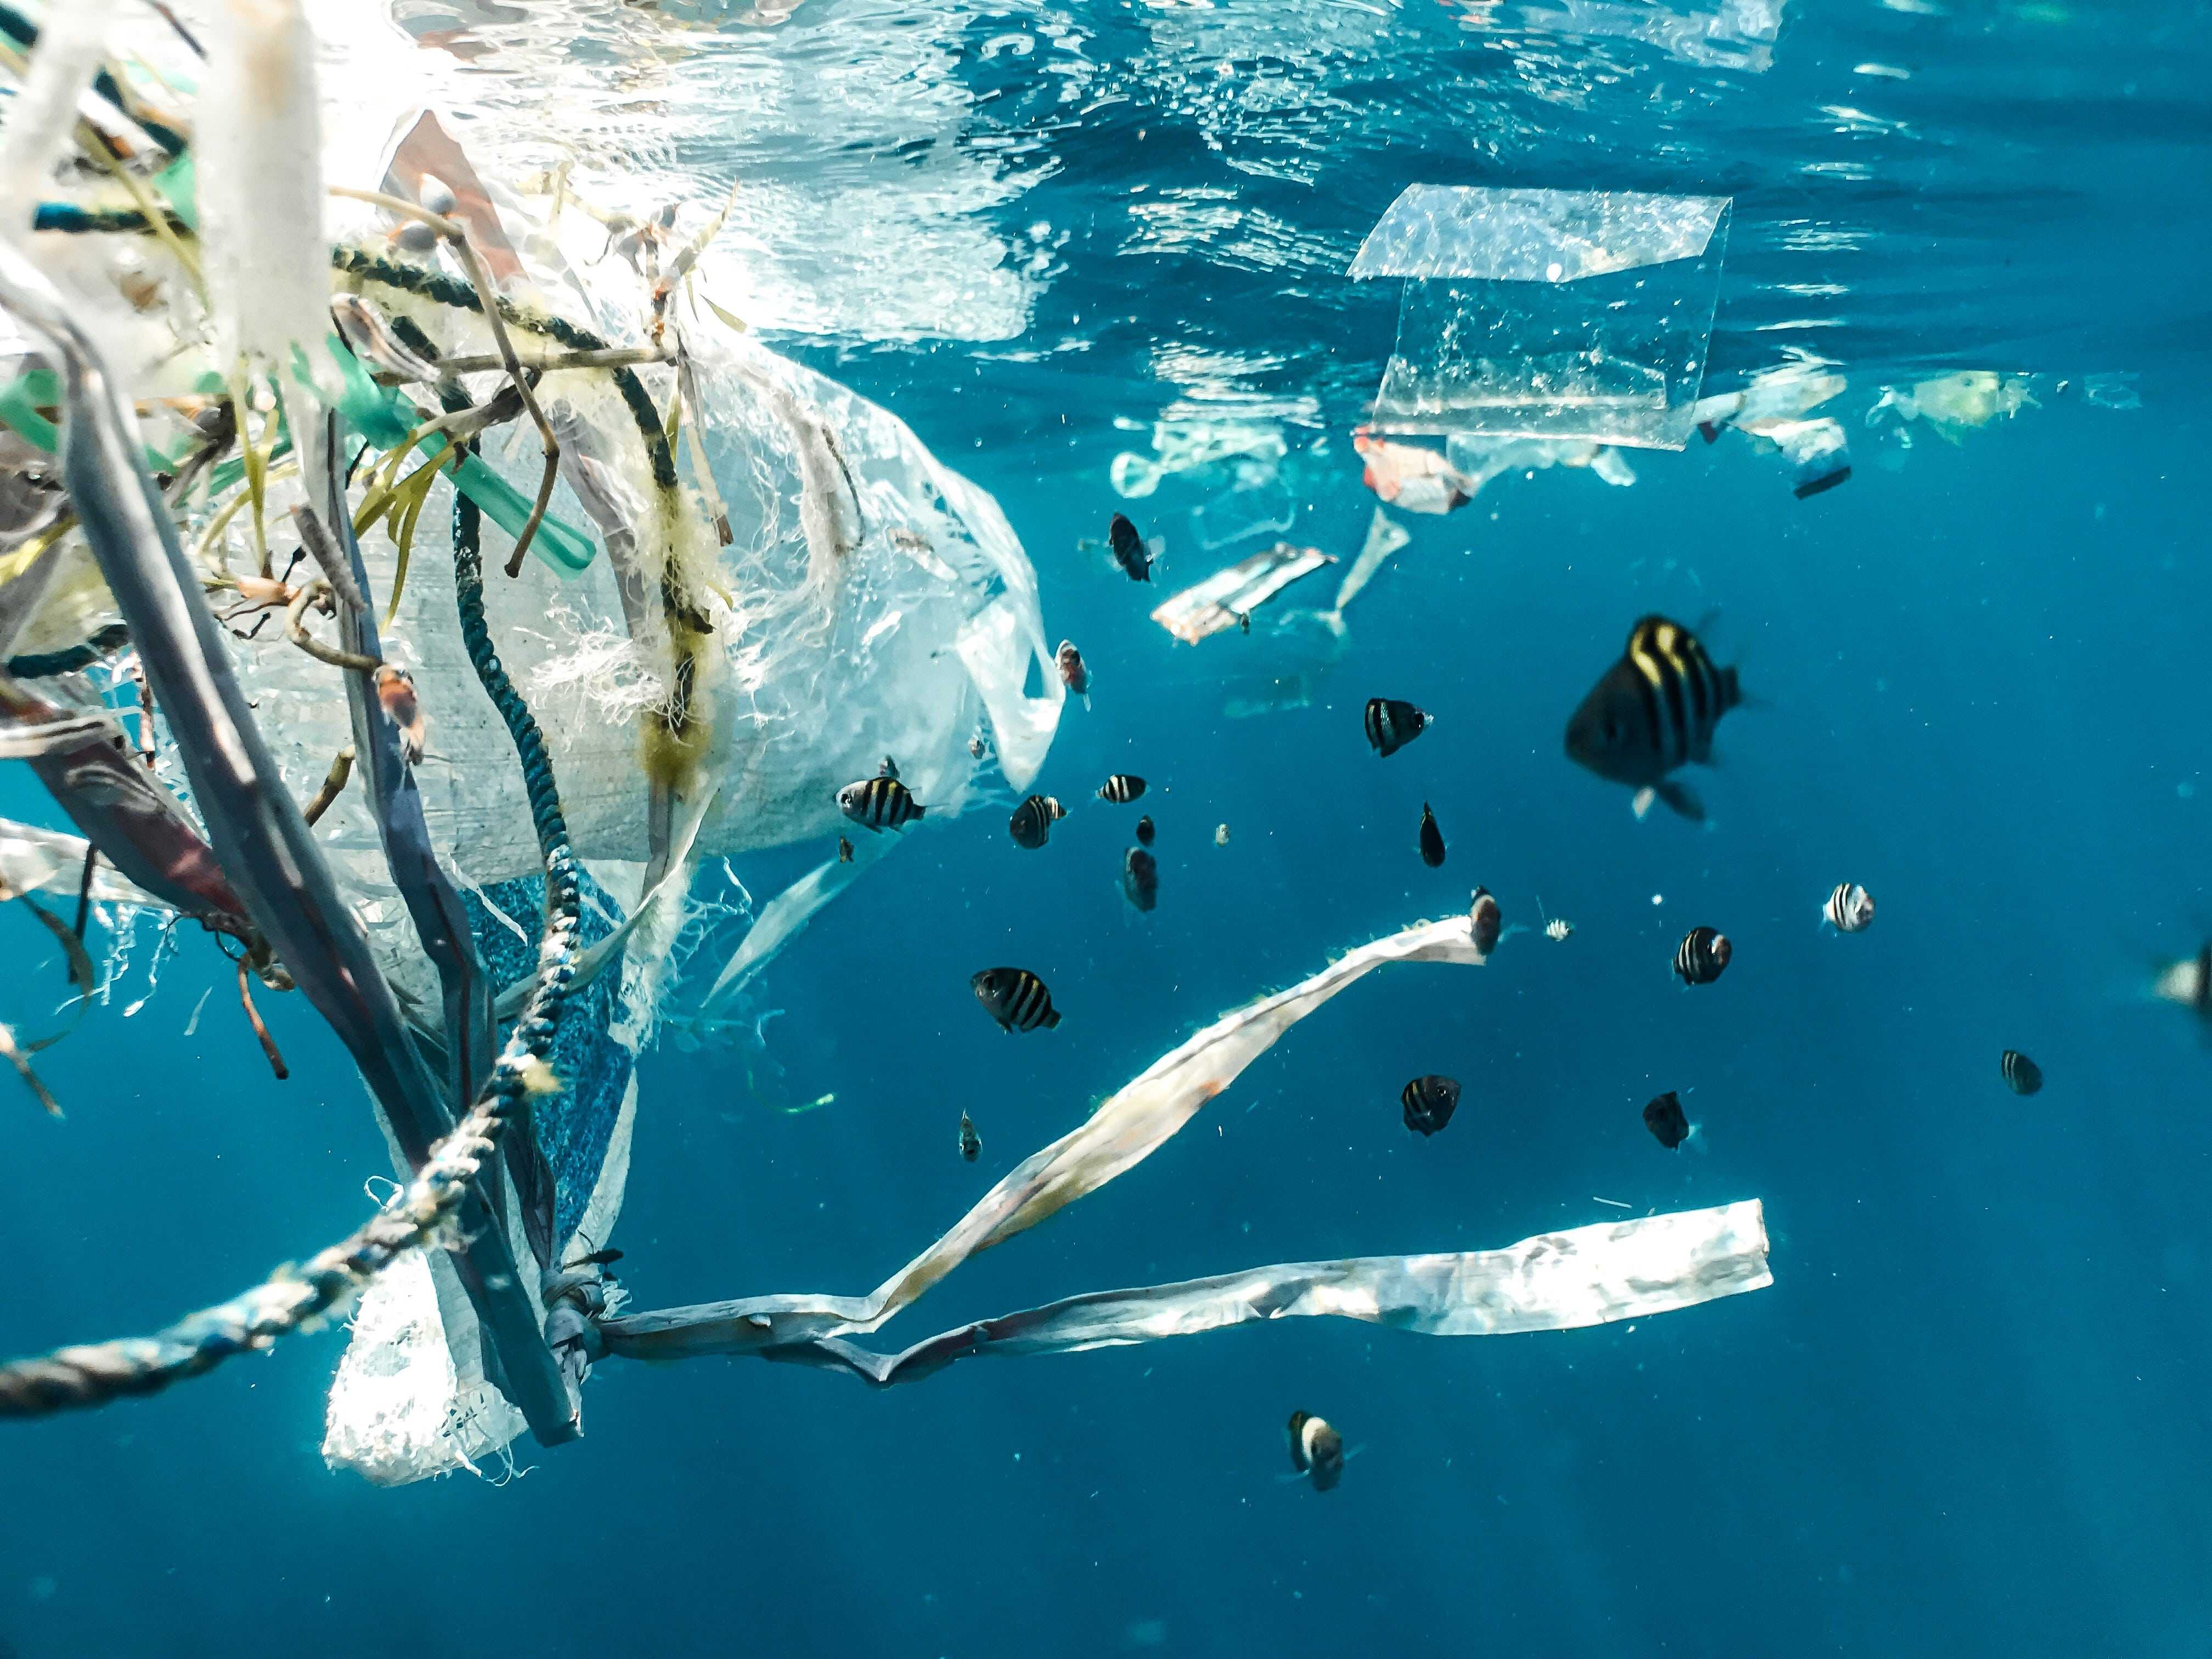 Plastic waste and trash in the ocean